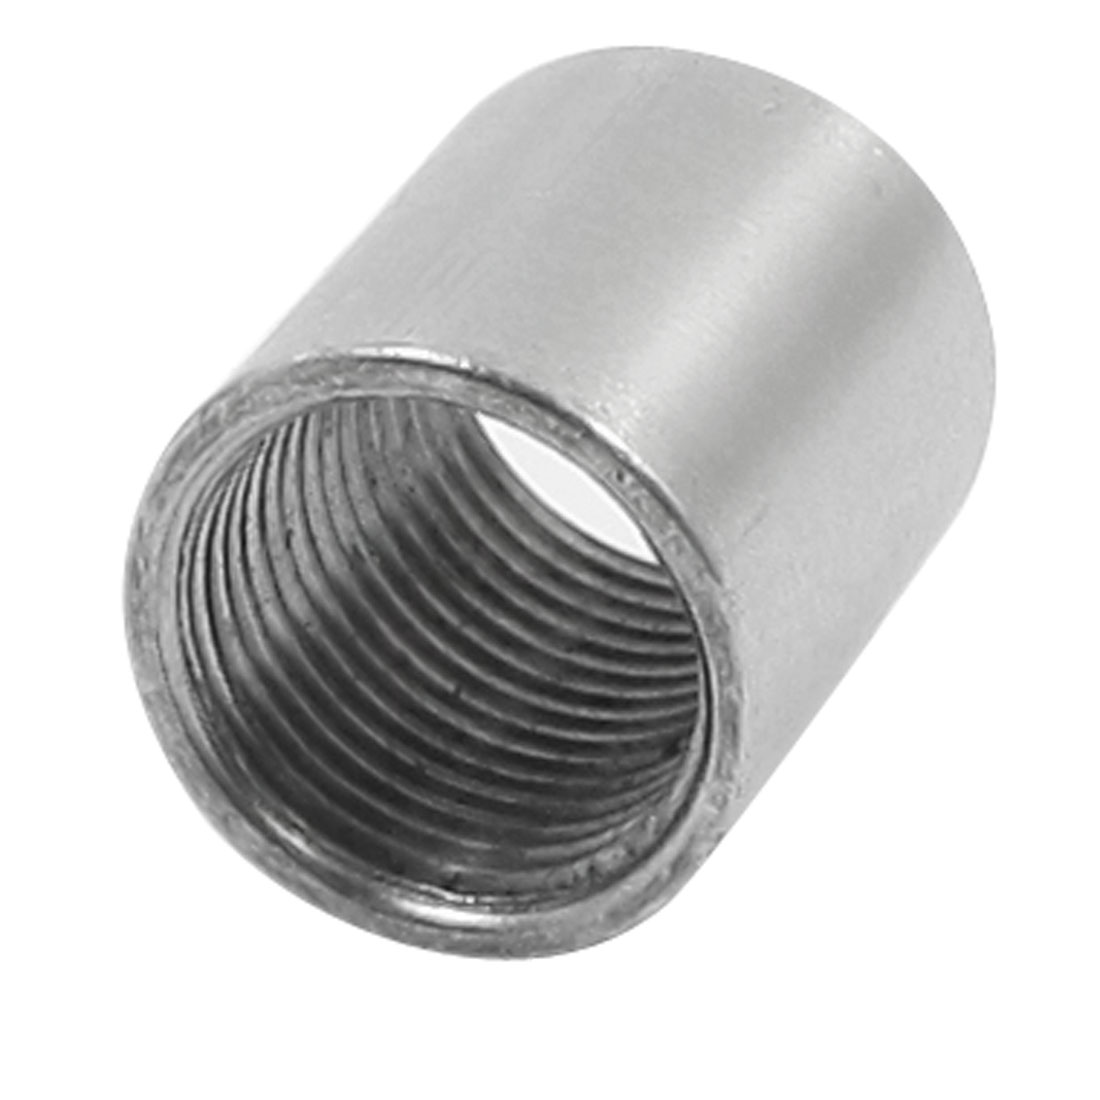 1/2PT F/F Female Thread Round Rod Coupling Straight Adapter Fittings